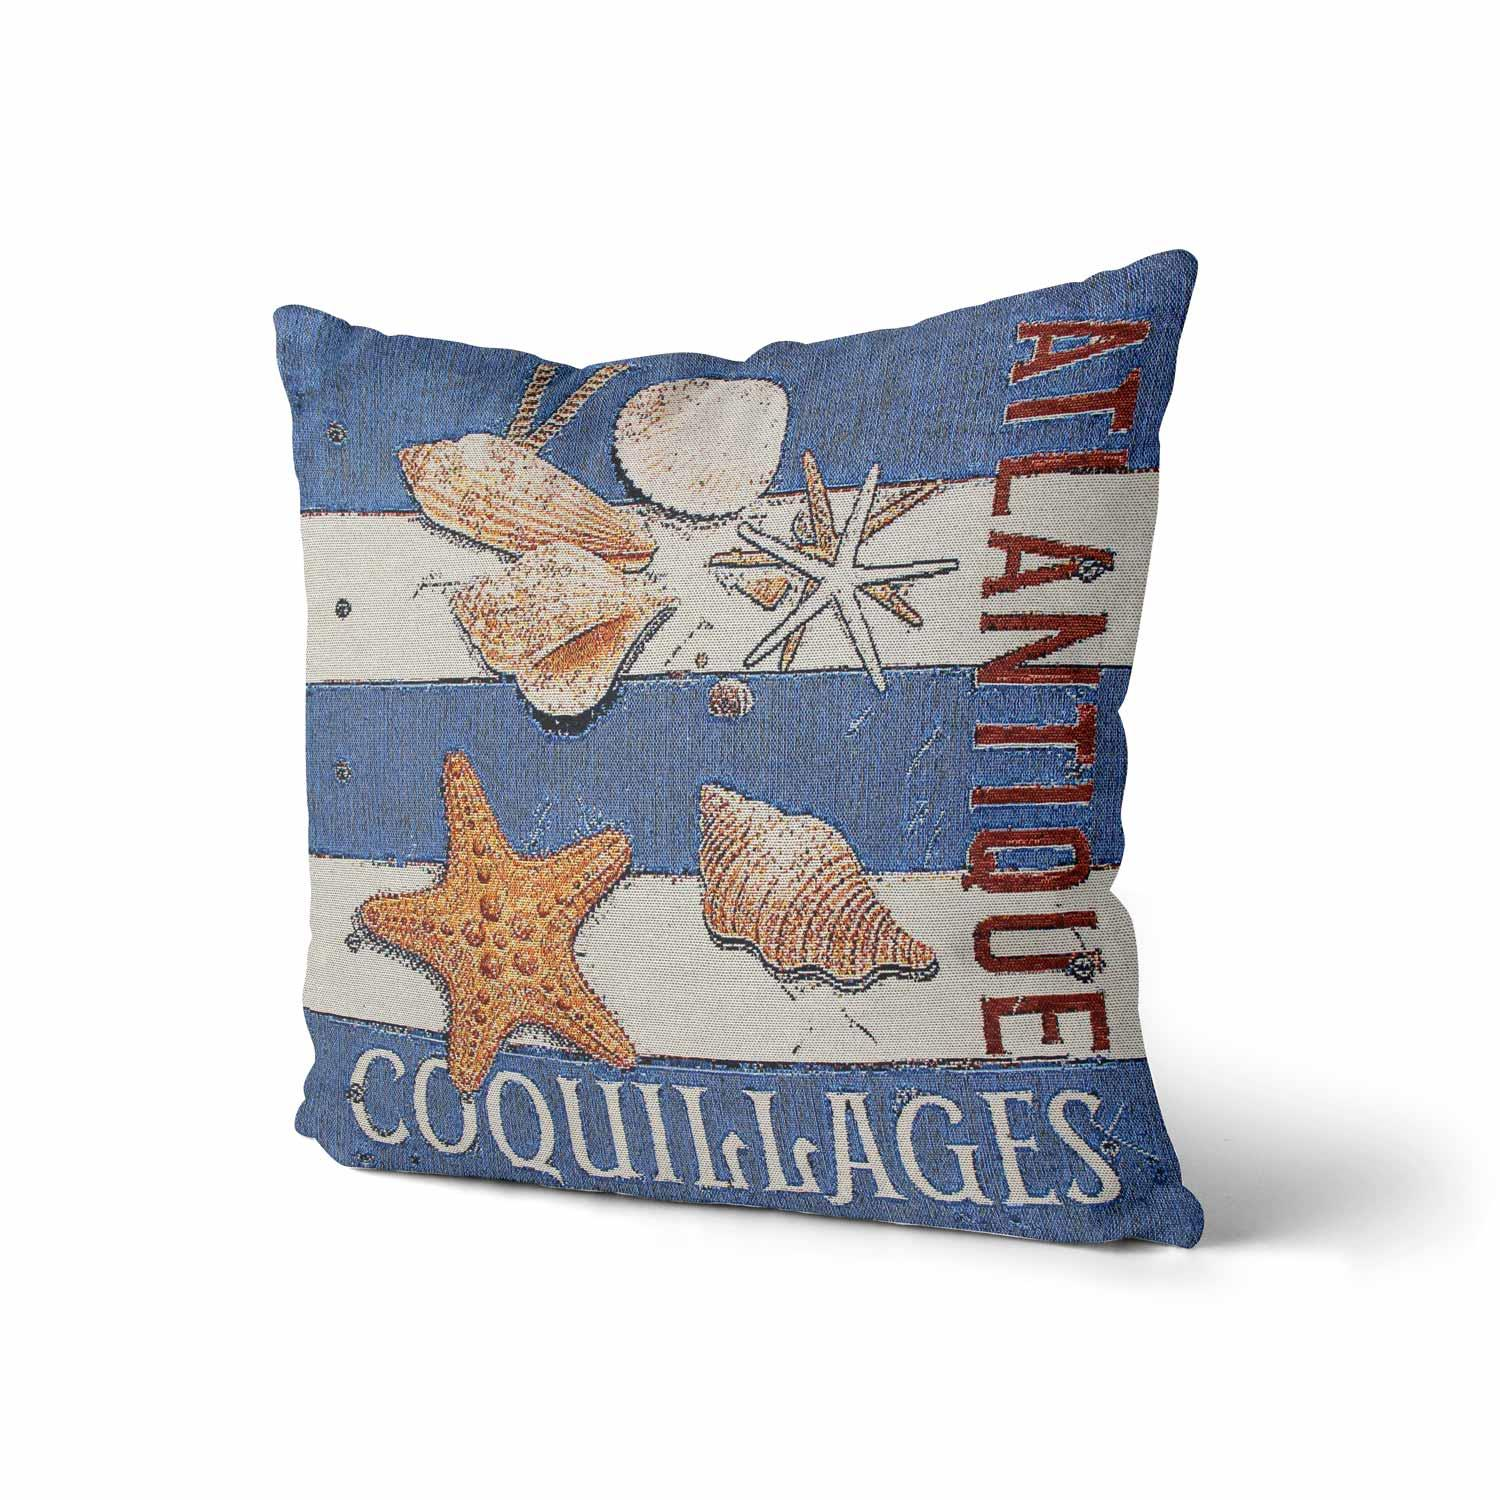 Tapestry-Cushion-Covers-Vintage-Pillow-Cover-Collection-18-034-45cm-Filled-Cushions thumbnail 191